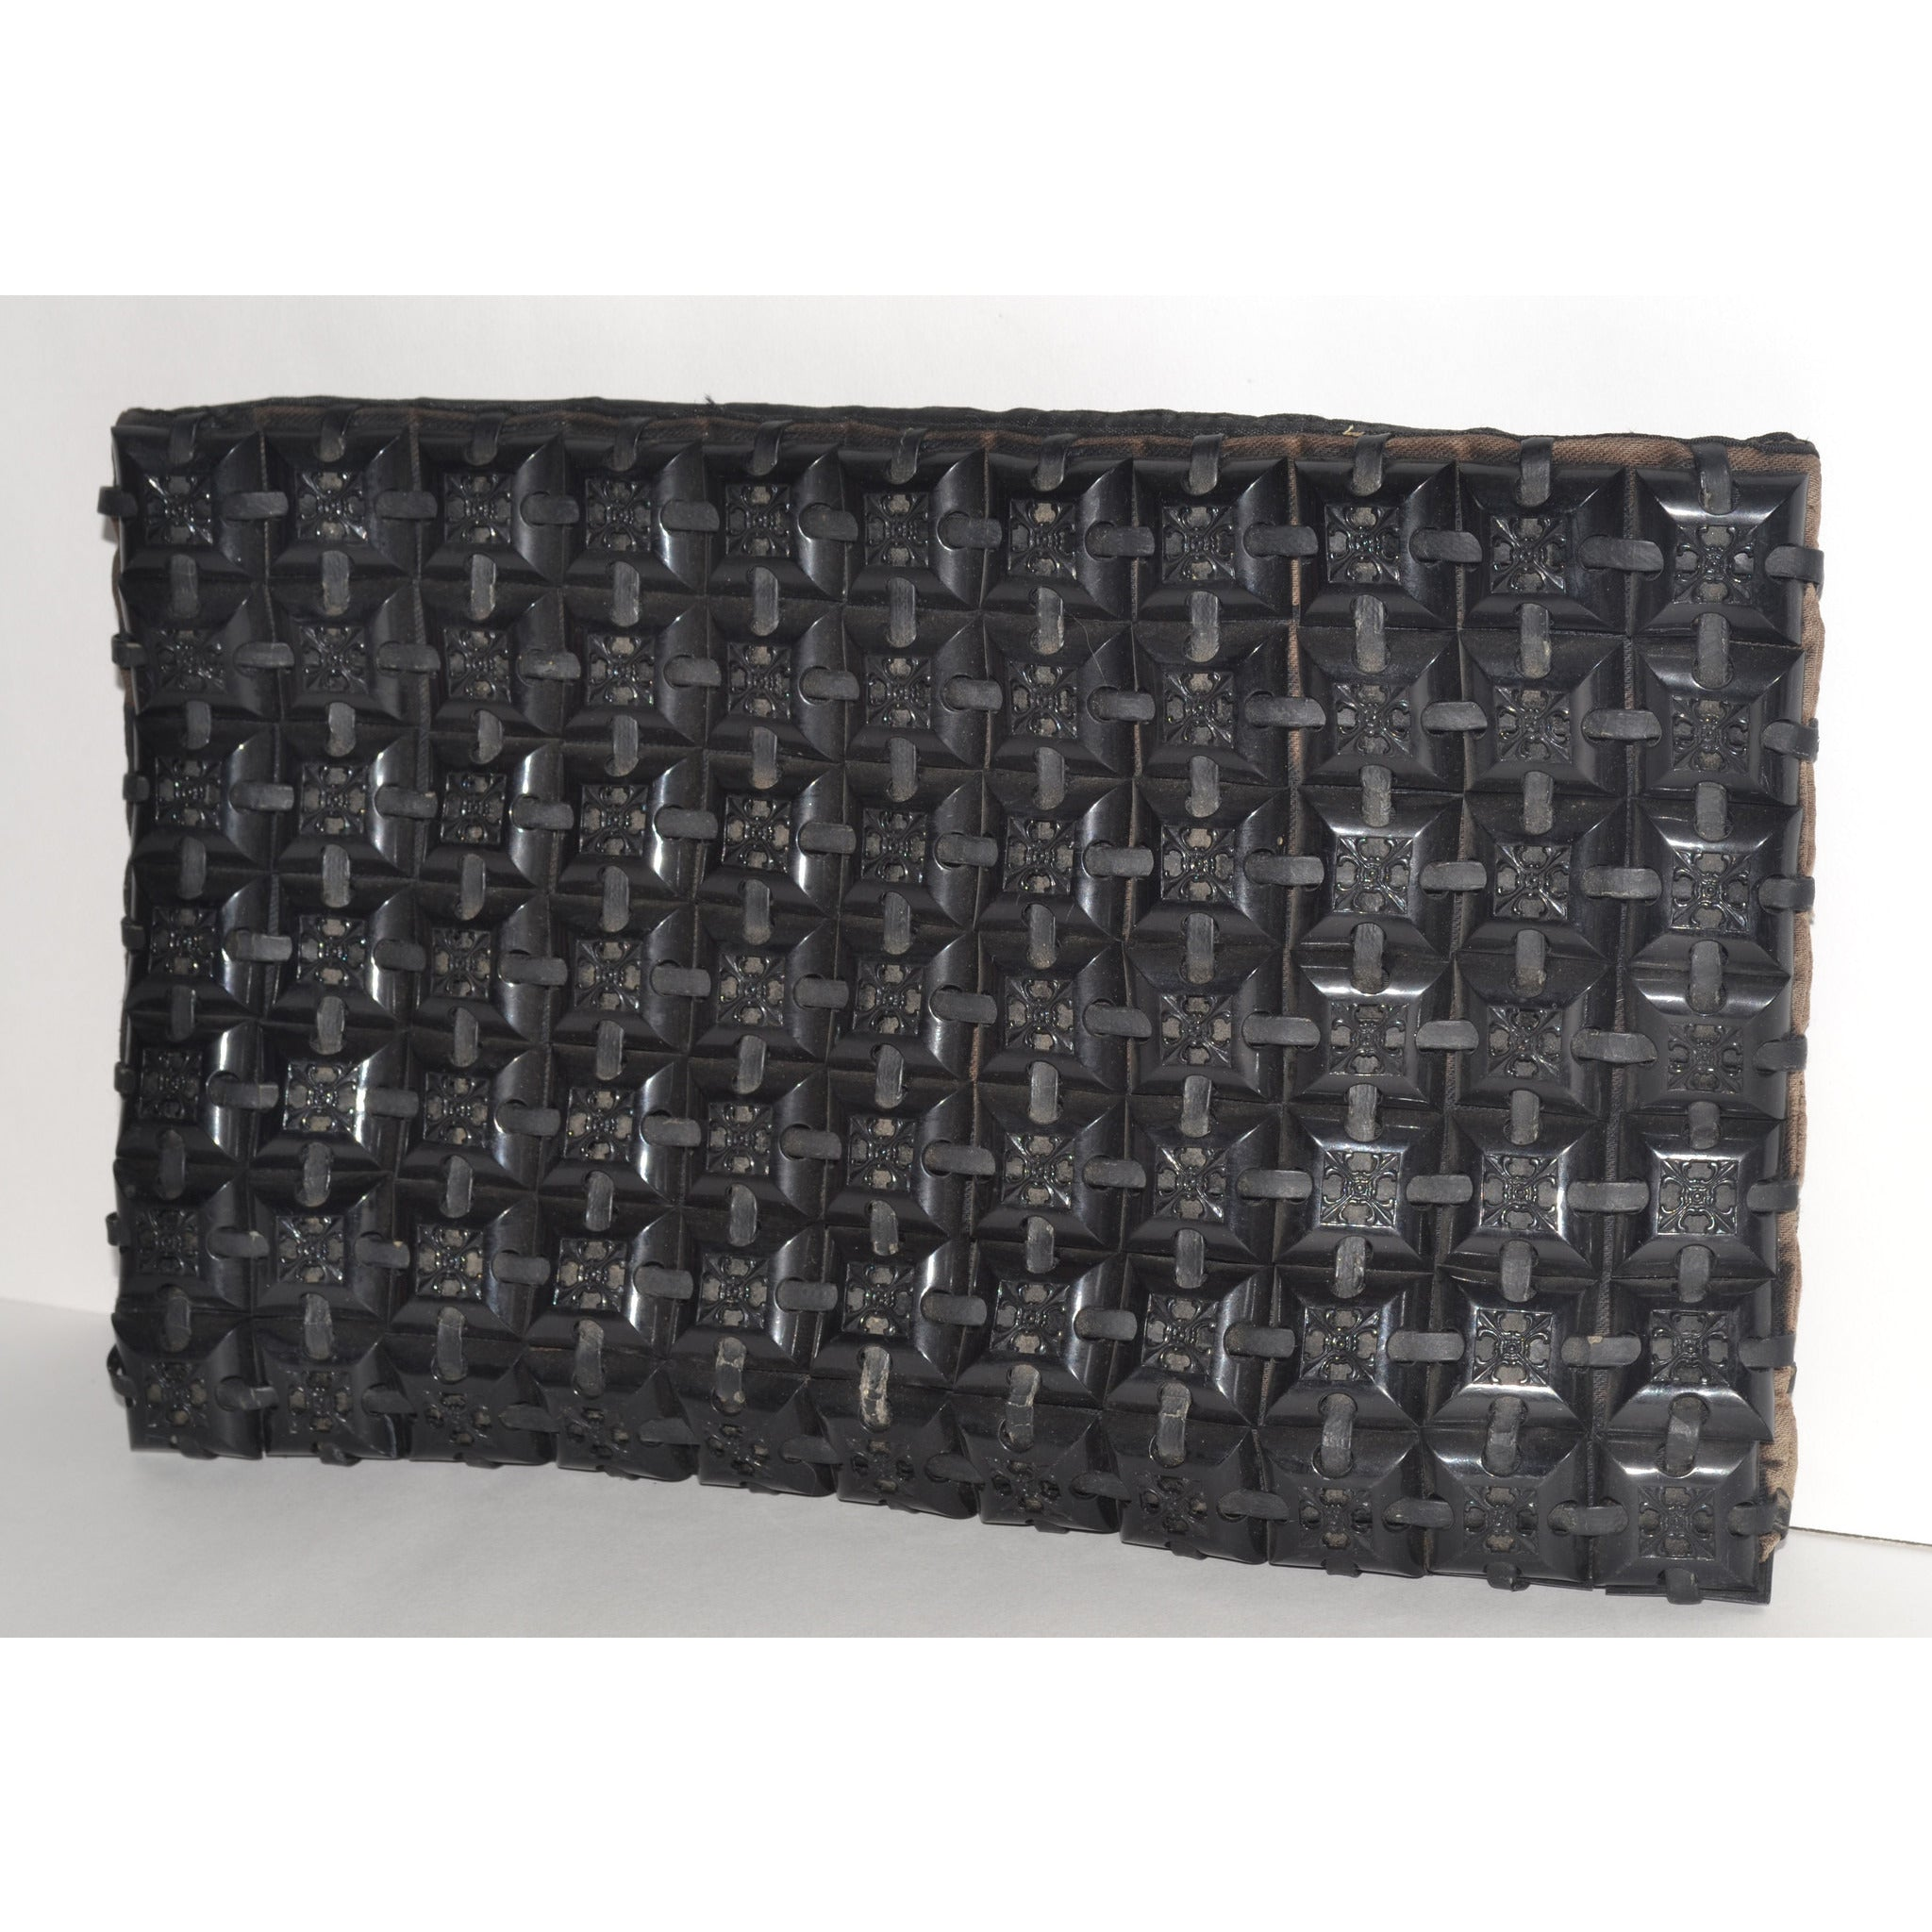 Vintage Black Plastiflex Clutch Purse - 1940's